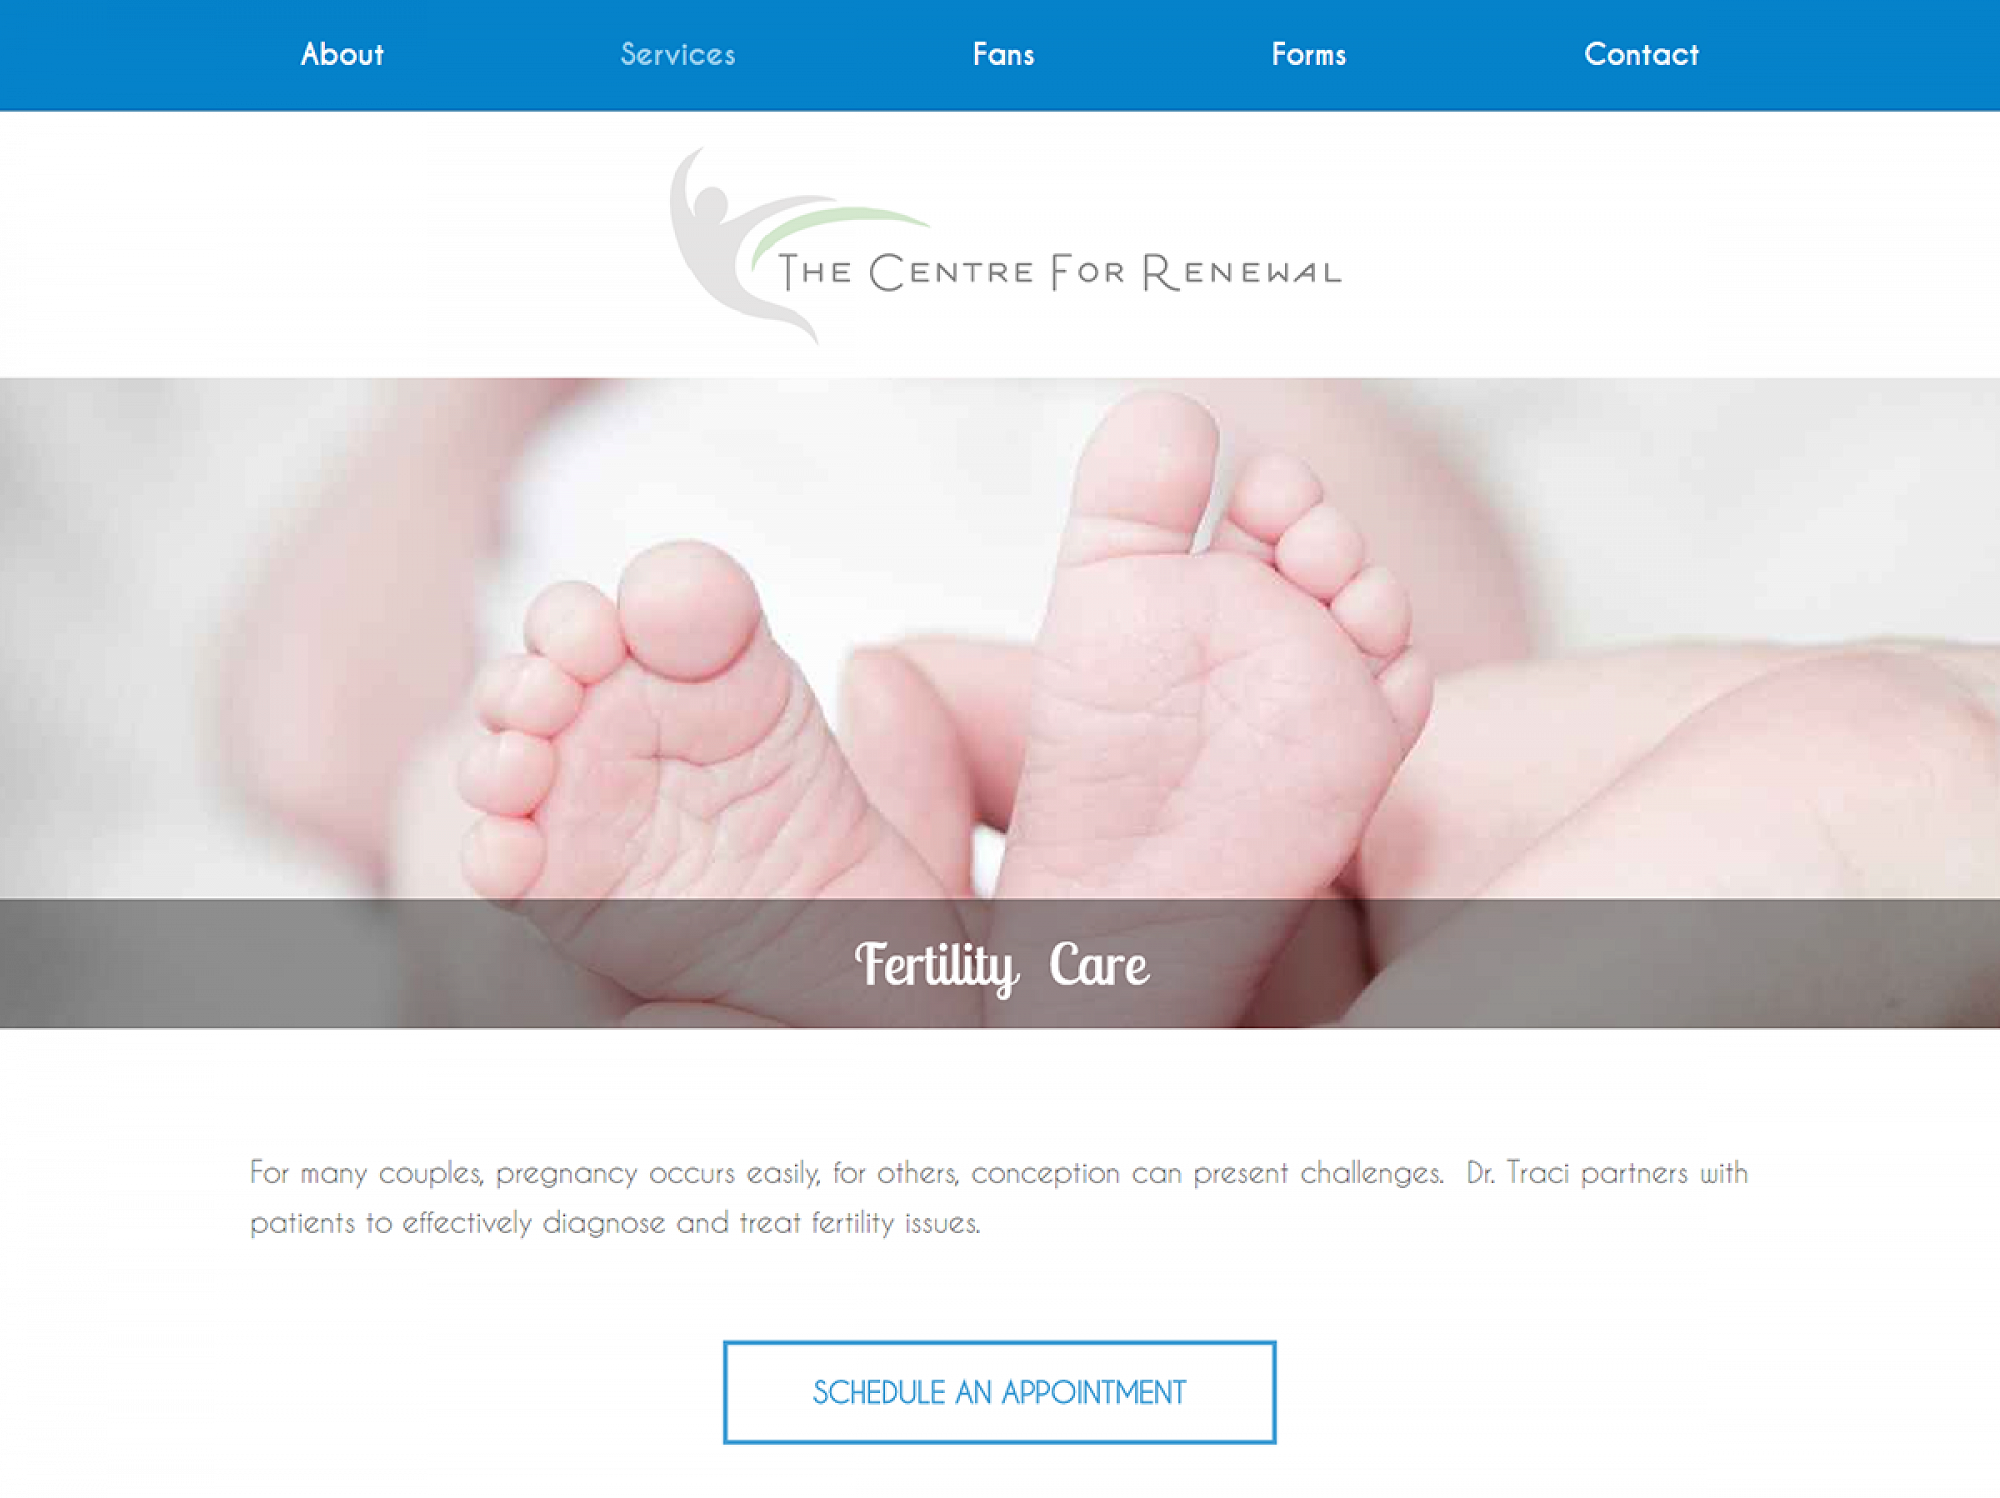 Centre For Renewal Service Page - Web Design